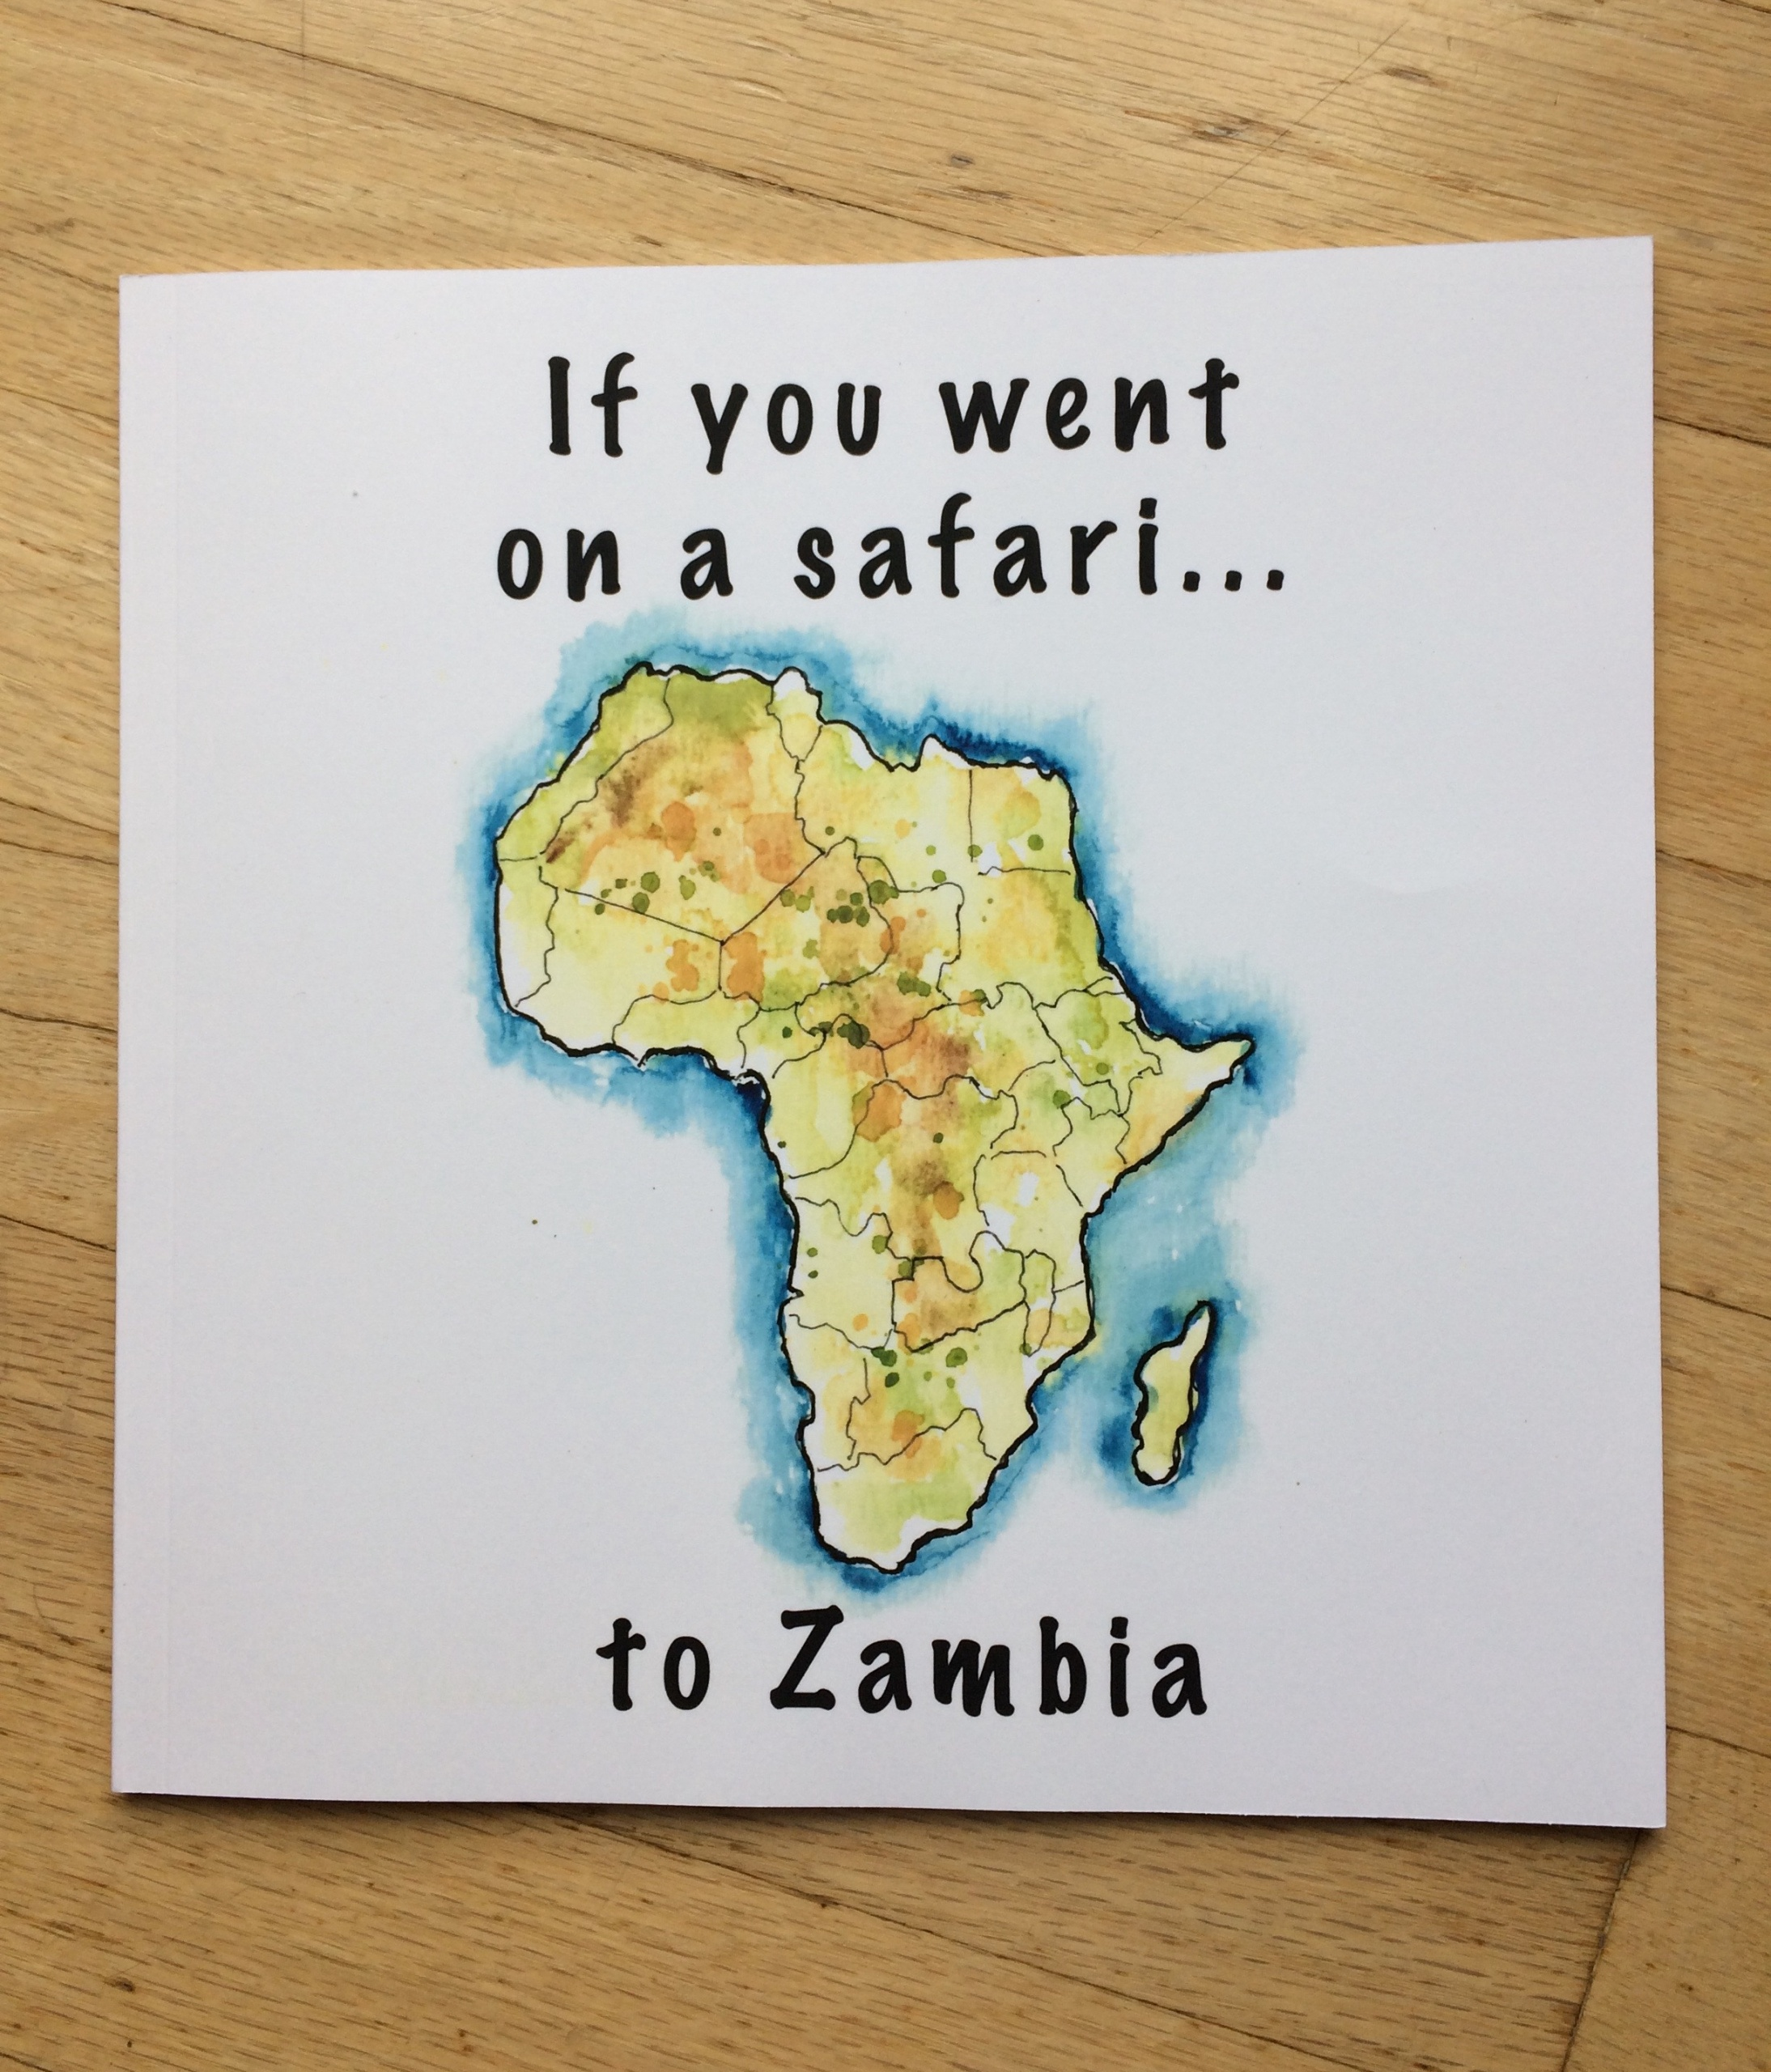 Book If you went on a Safari to Zambia